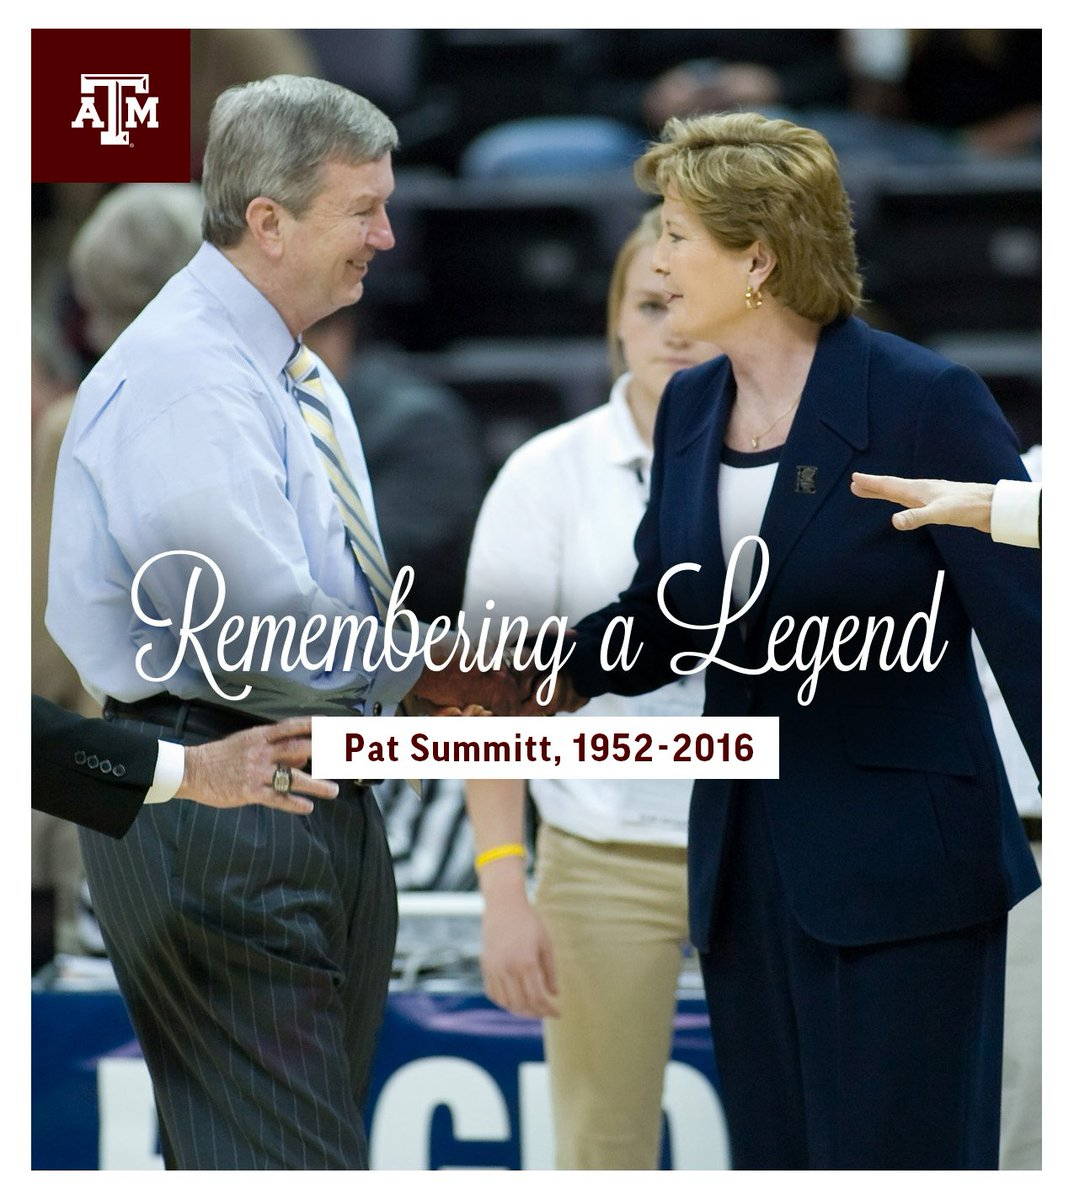 The Aggies express their deepest condolences to the family of Pat Summitt and the entire @LadyVol_Hoops community. https://t.co/YRzjYRZ2di